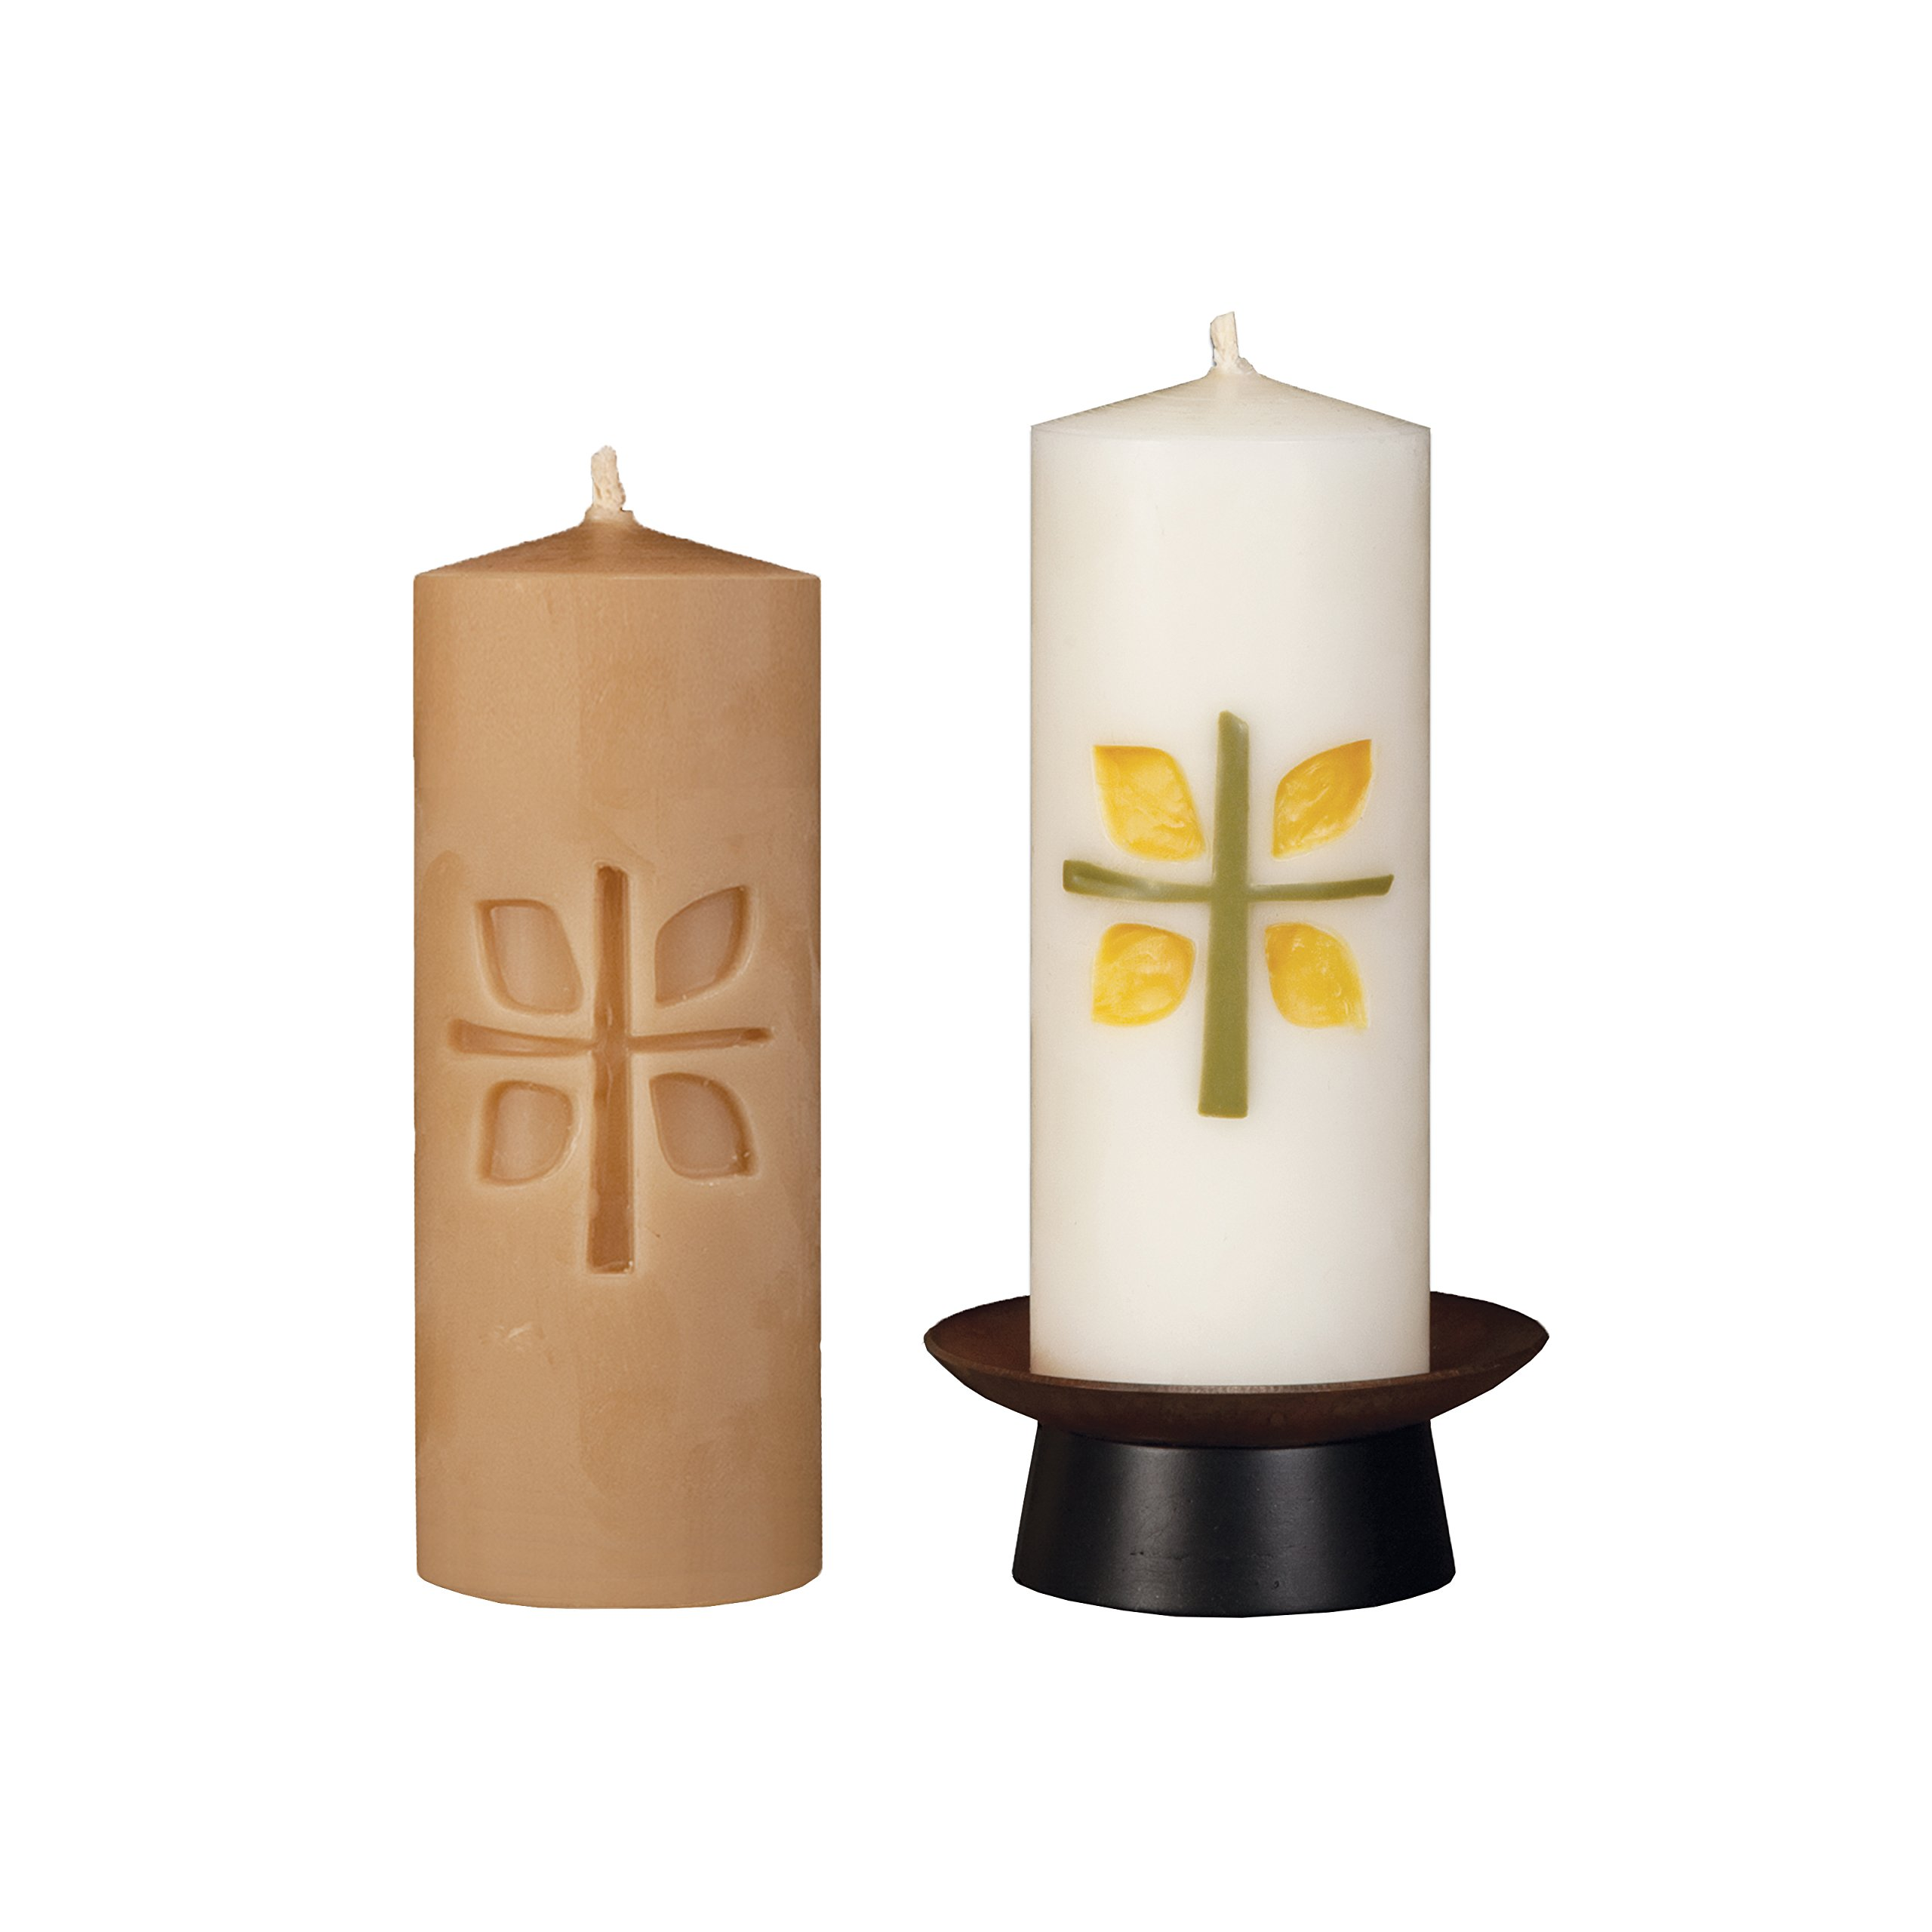 Beeswax Christos™ Candle Set; 2-1/2'' x 6'' candles with base; Dewfall™ design in olive green and yellow. Handcrafted in New England. Made in America. by Marklin Candle